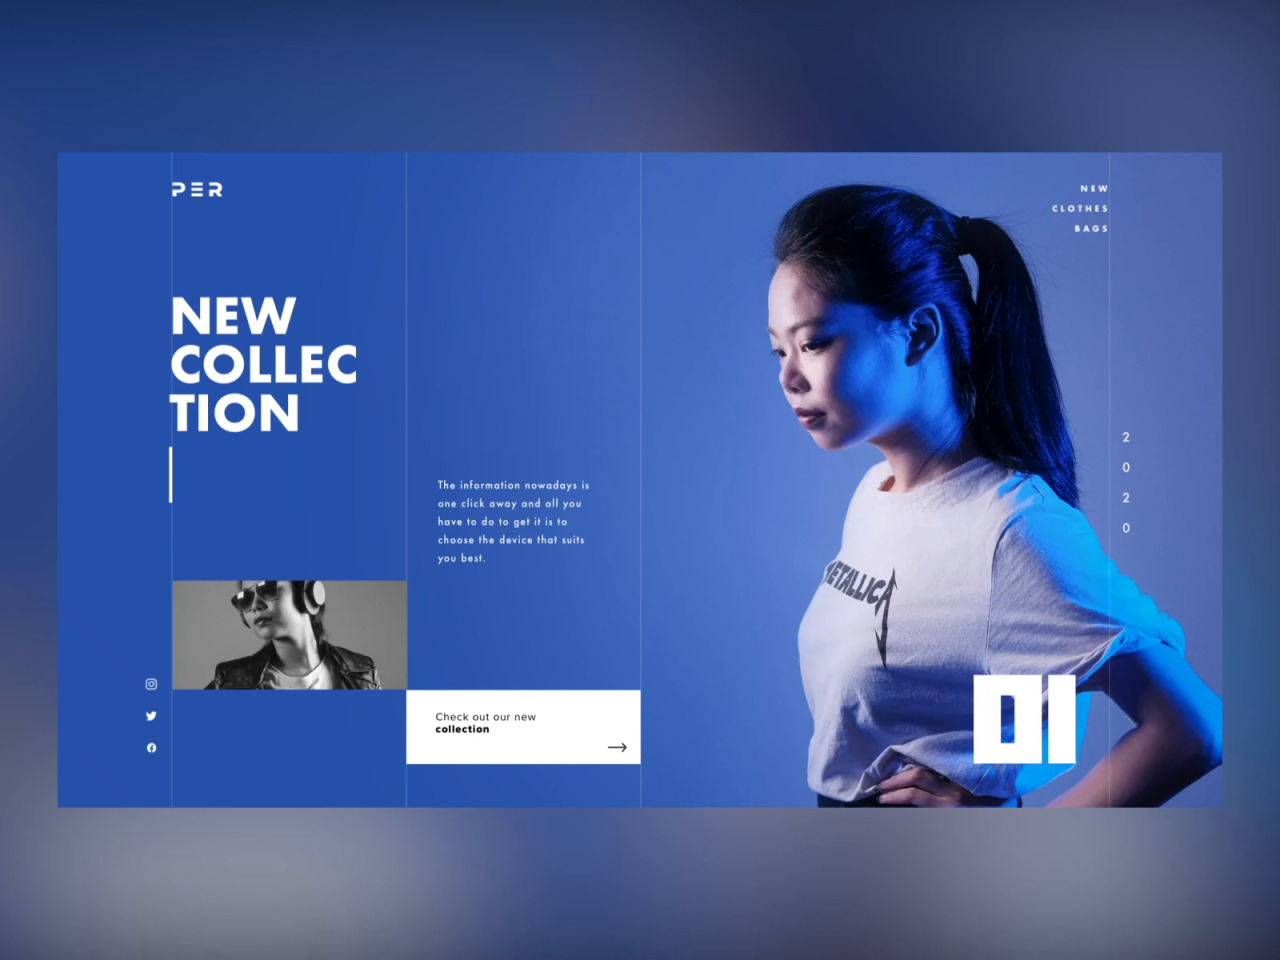 Making A Landing Page Concept Using My Own Photos by Minh Pham #ui#ux#design drips#interface#animation#elegant#fashion#interaction#landing page#layout#minh pham#motion#parallax#photography#typography#vietnam#web design